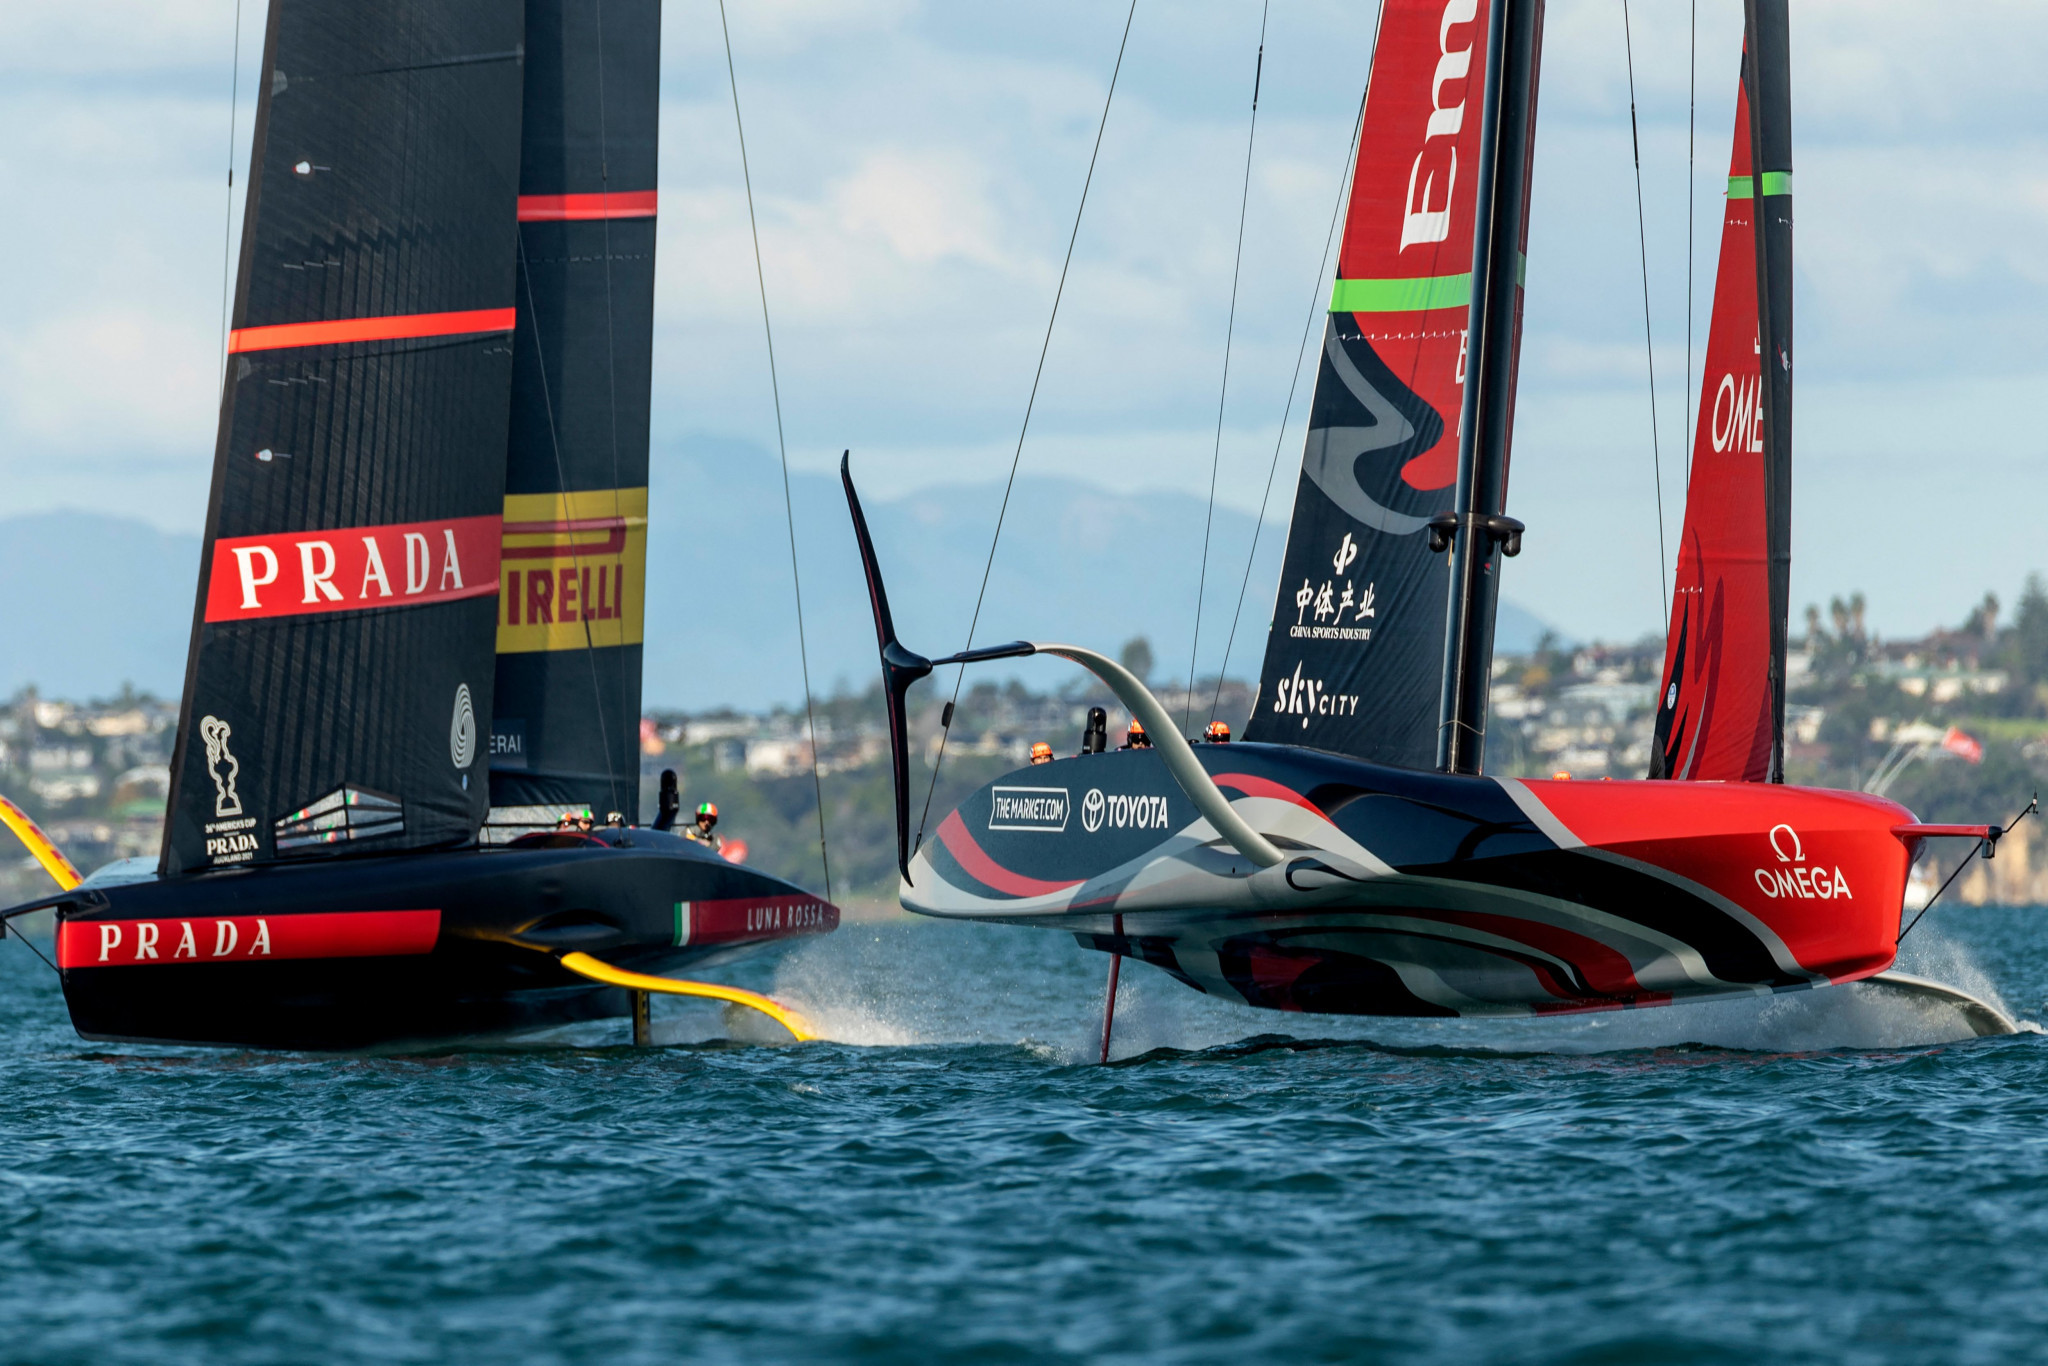 Team New Zealand respond to draw level with Luna Rossa in America's Cup